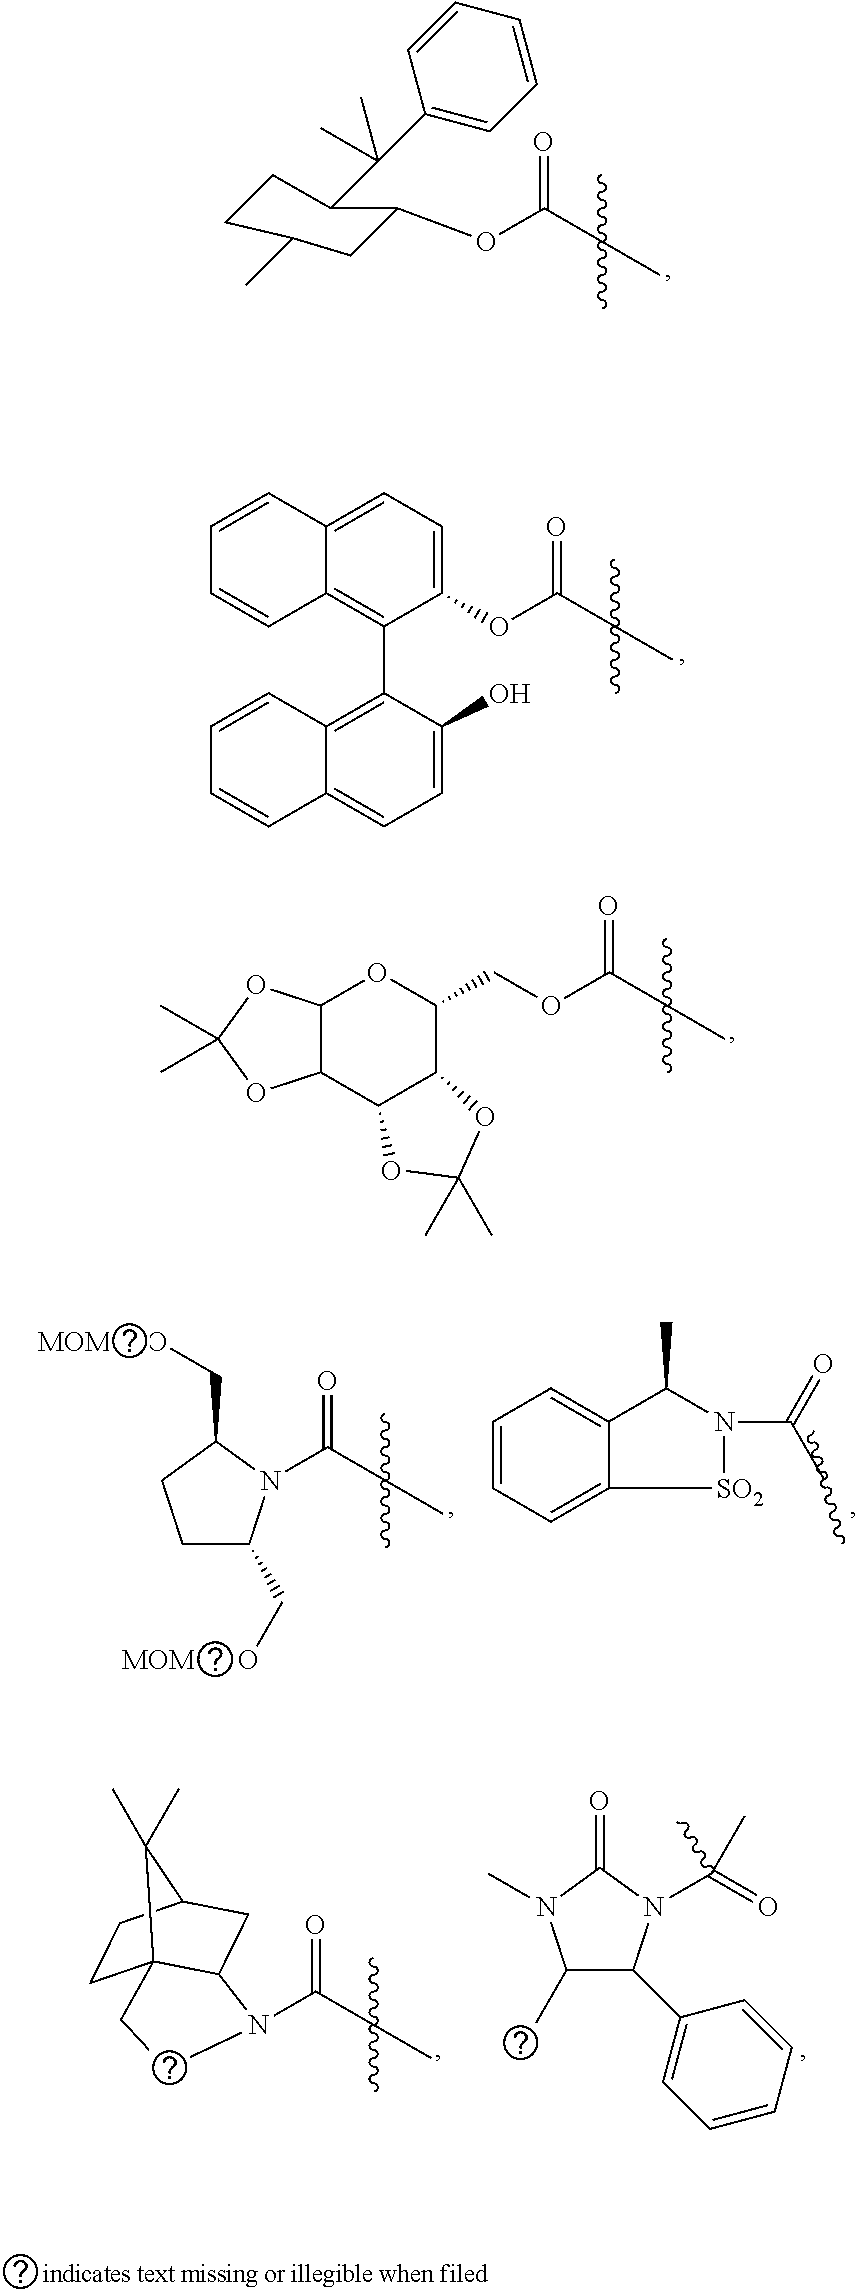 Us20140294763a1 Peptidomimetic Protease Inhibitors Google Patents Wiring Diagram Lowe 165 Fm Figure 20141002 C00025